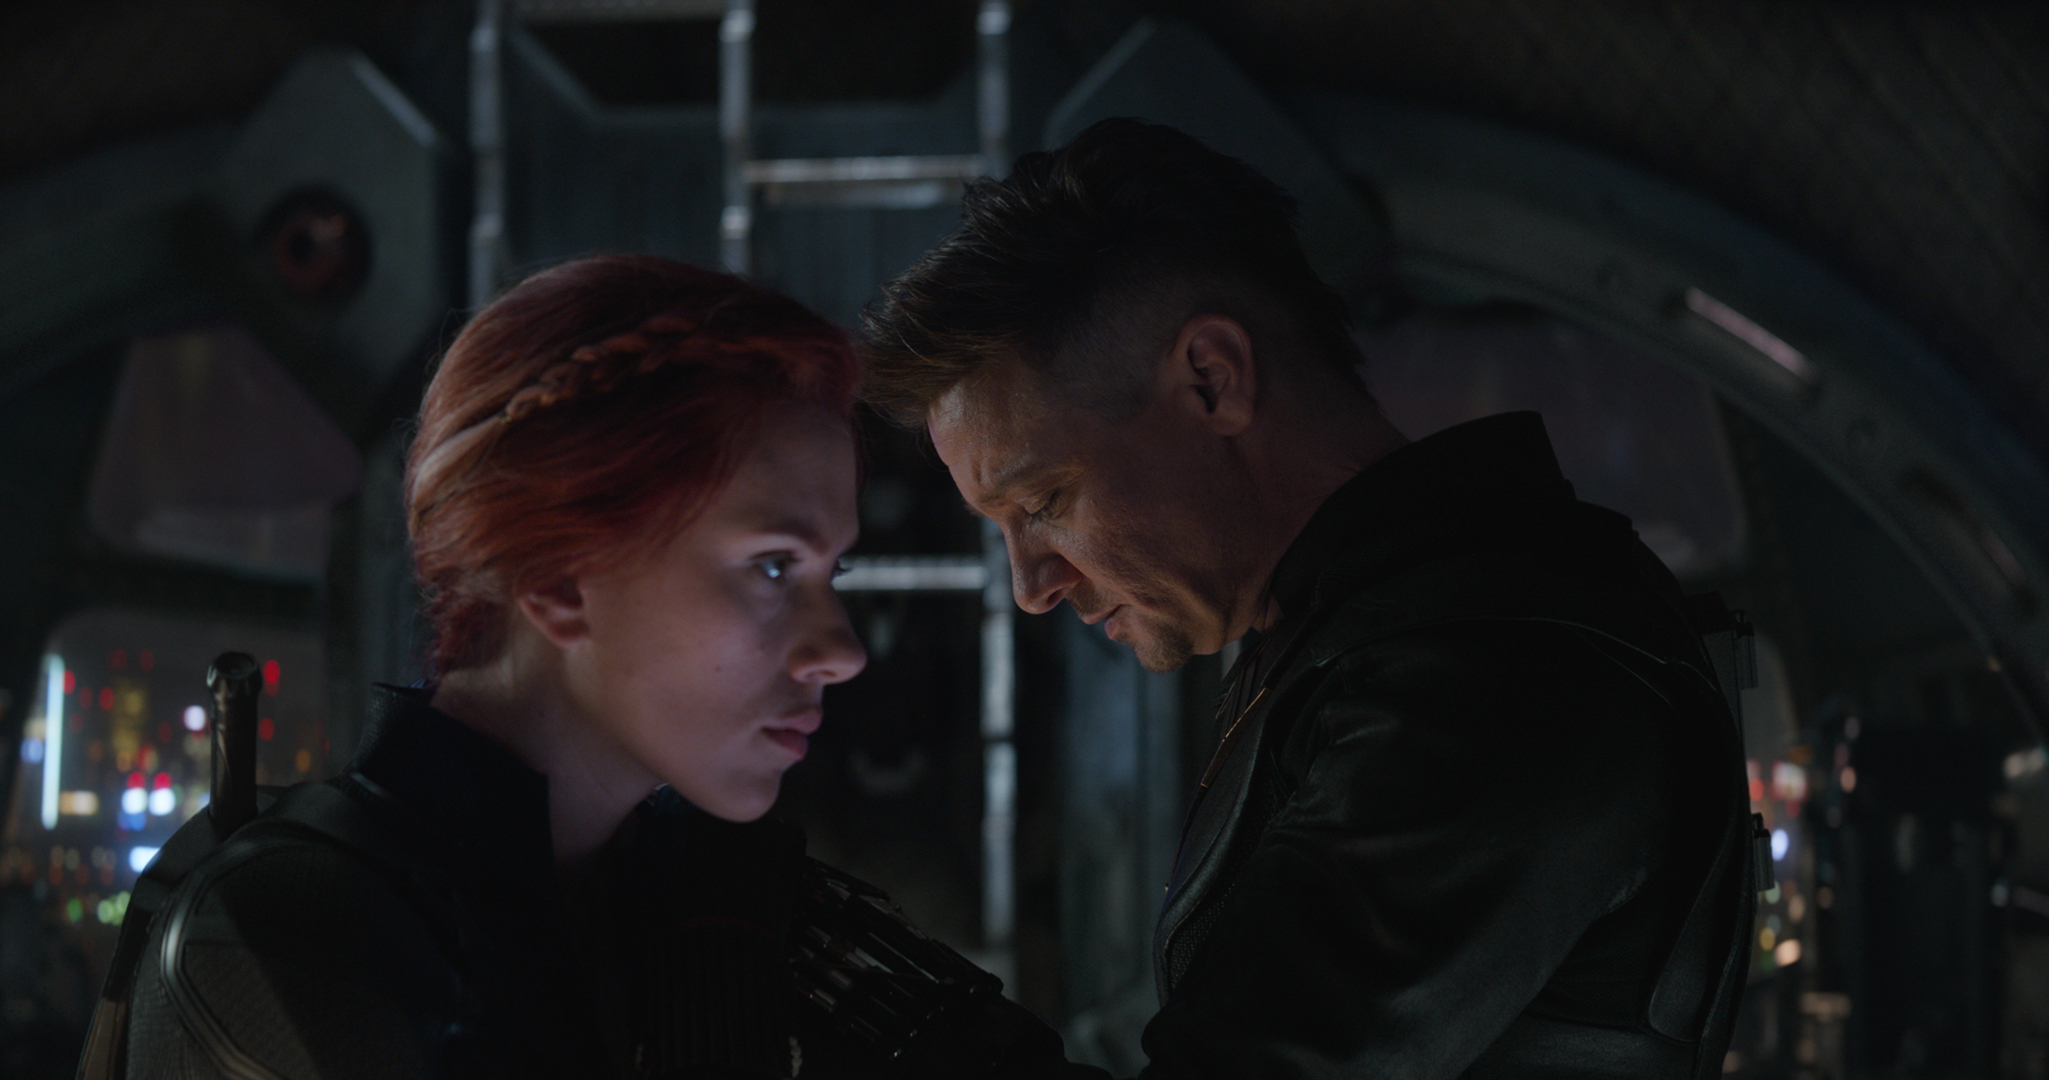 washingtonpost.com - Monica Hesse - I watched 21 Marvel movies this month - and witnessed a decade of progress for women